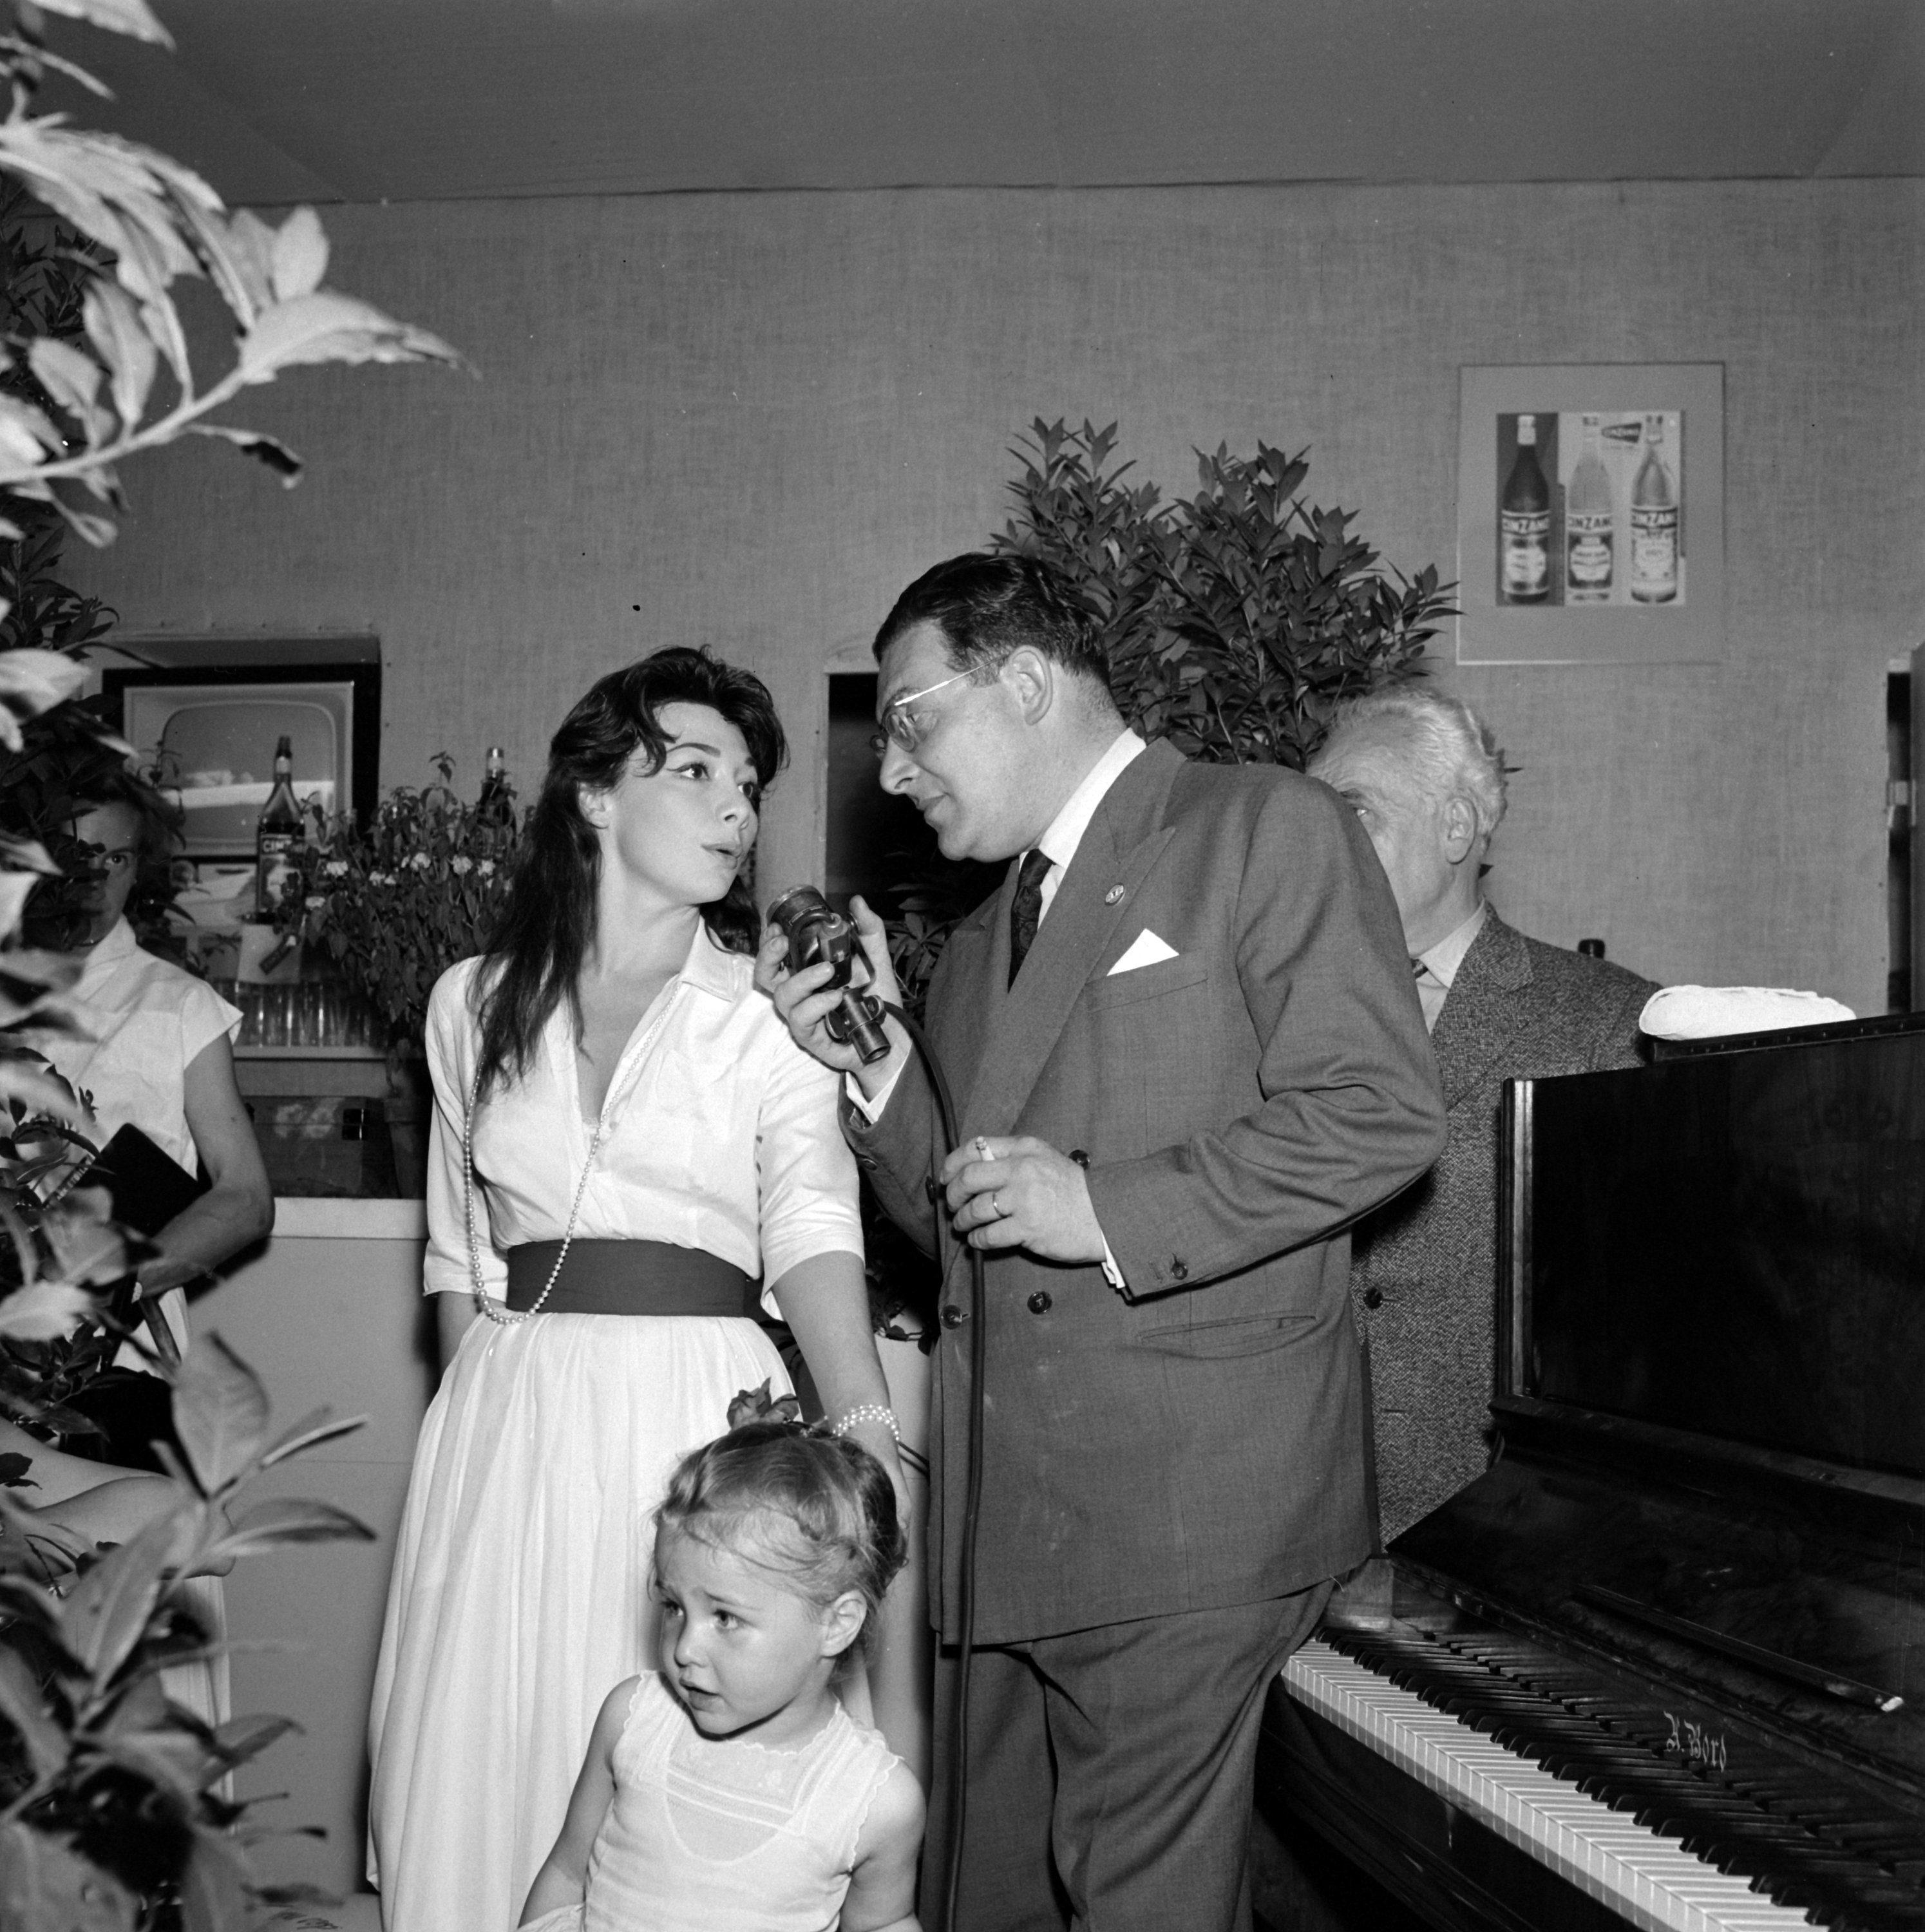 """Juliette Greco accompanied by her girl answers Leon Zitrone's questions for the program """"The Fair in Stars,"""" 1959 